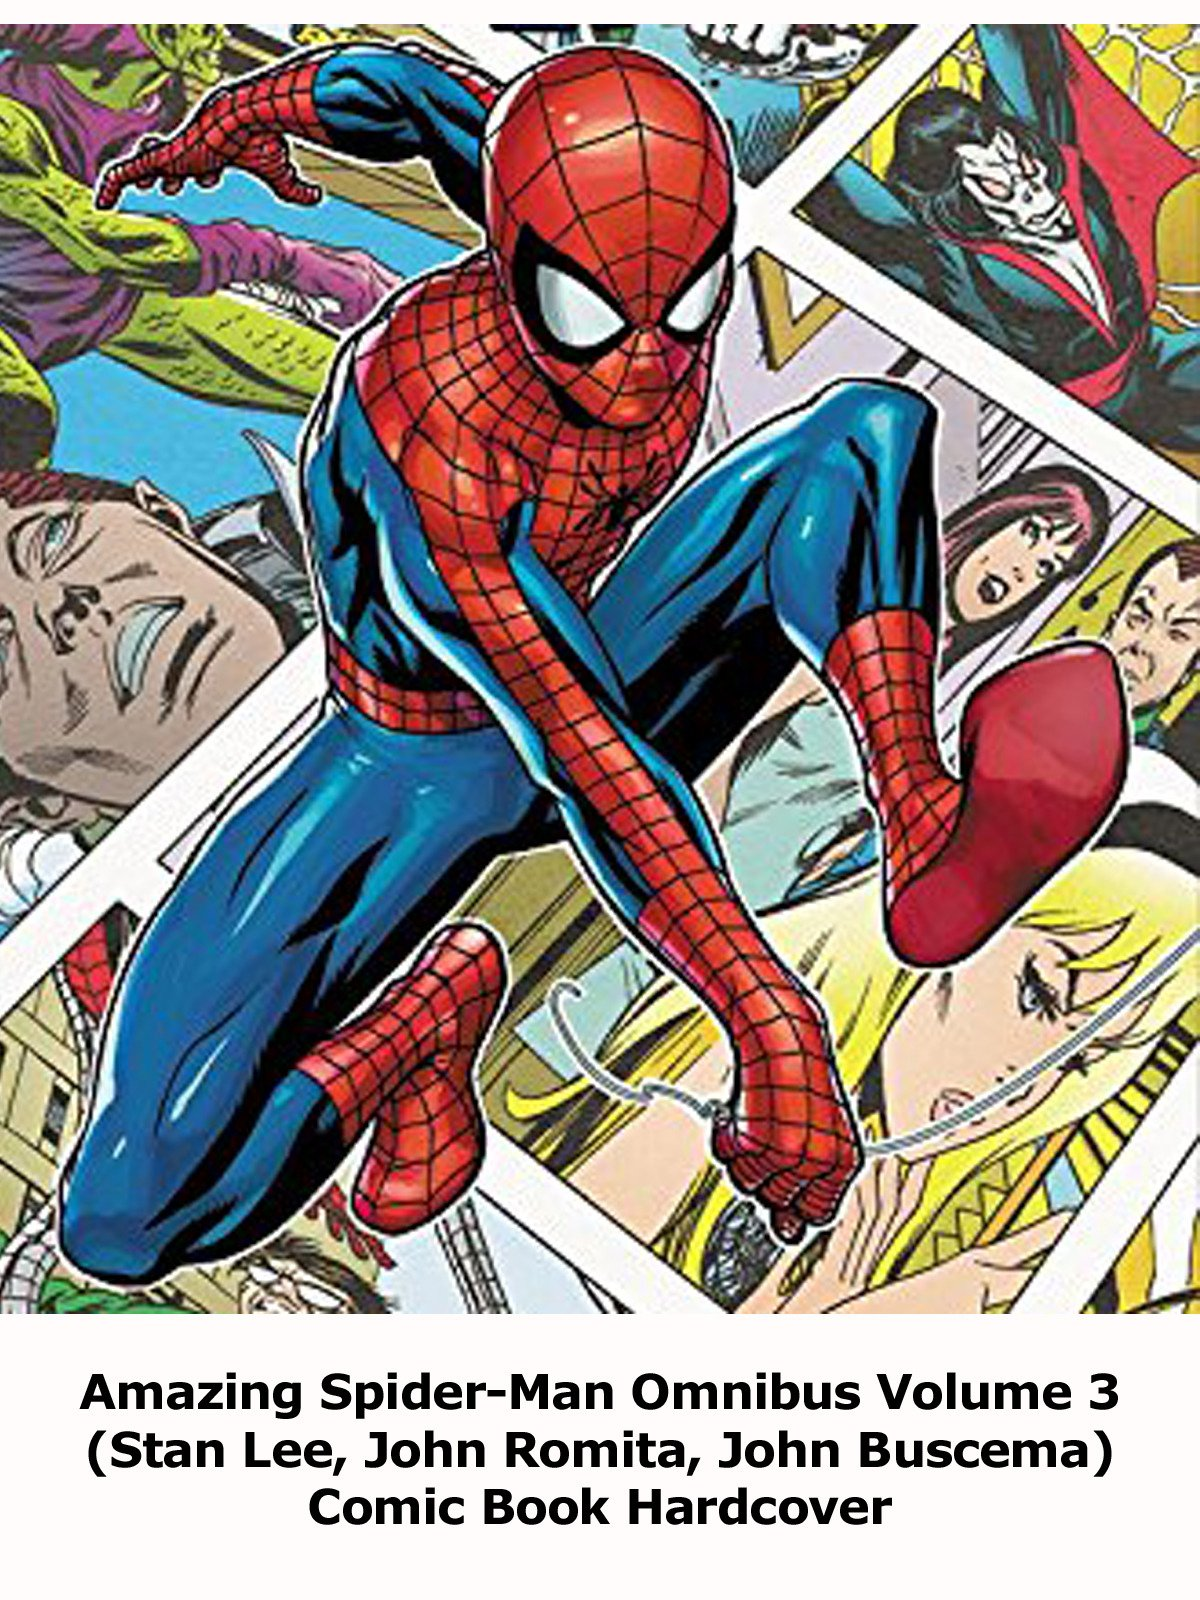 Review: Amazing Spider-Man Omnibus Volume 3 (Stan Lee, John Romita, John Buscema) Comic Book Hardcover